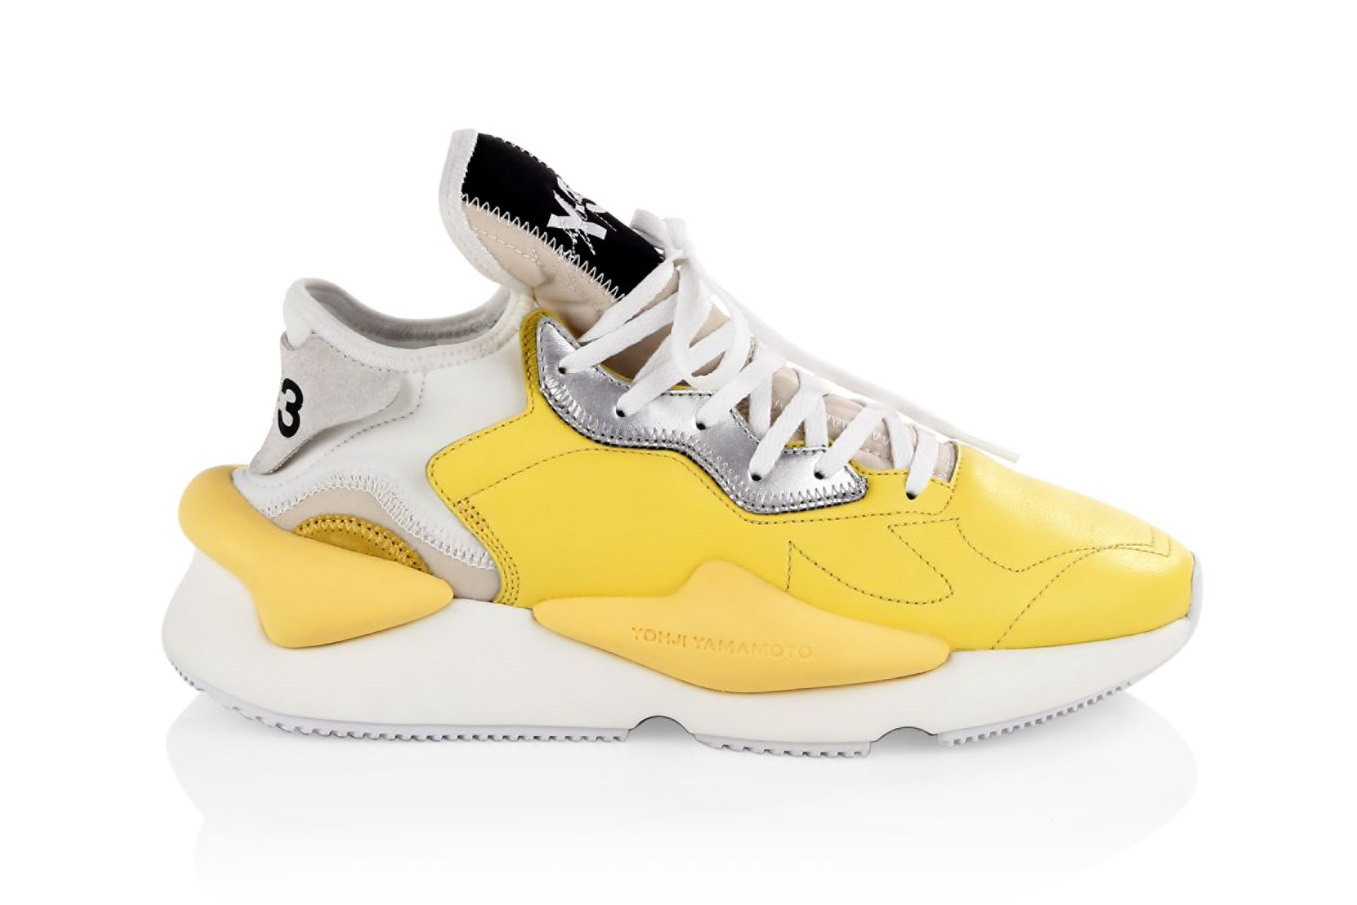 Y-3 Kaiwa Sneakers in Yellow Dad Shoes Yohji Yamamoto chunky runner white july 2018 drop release date info spring summer